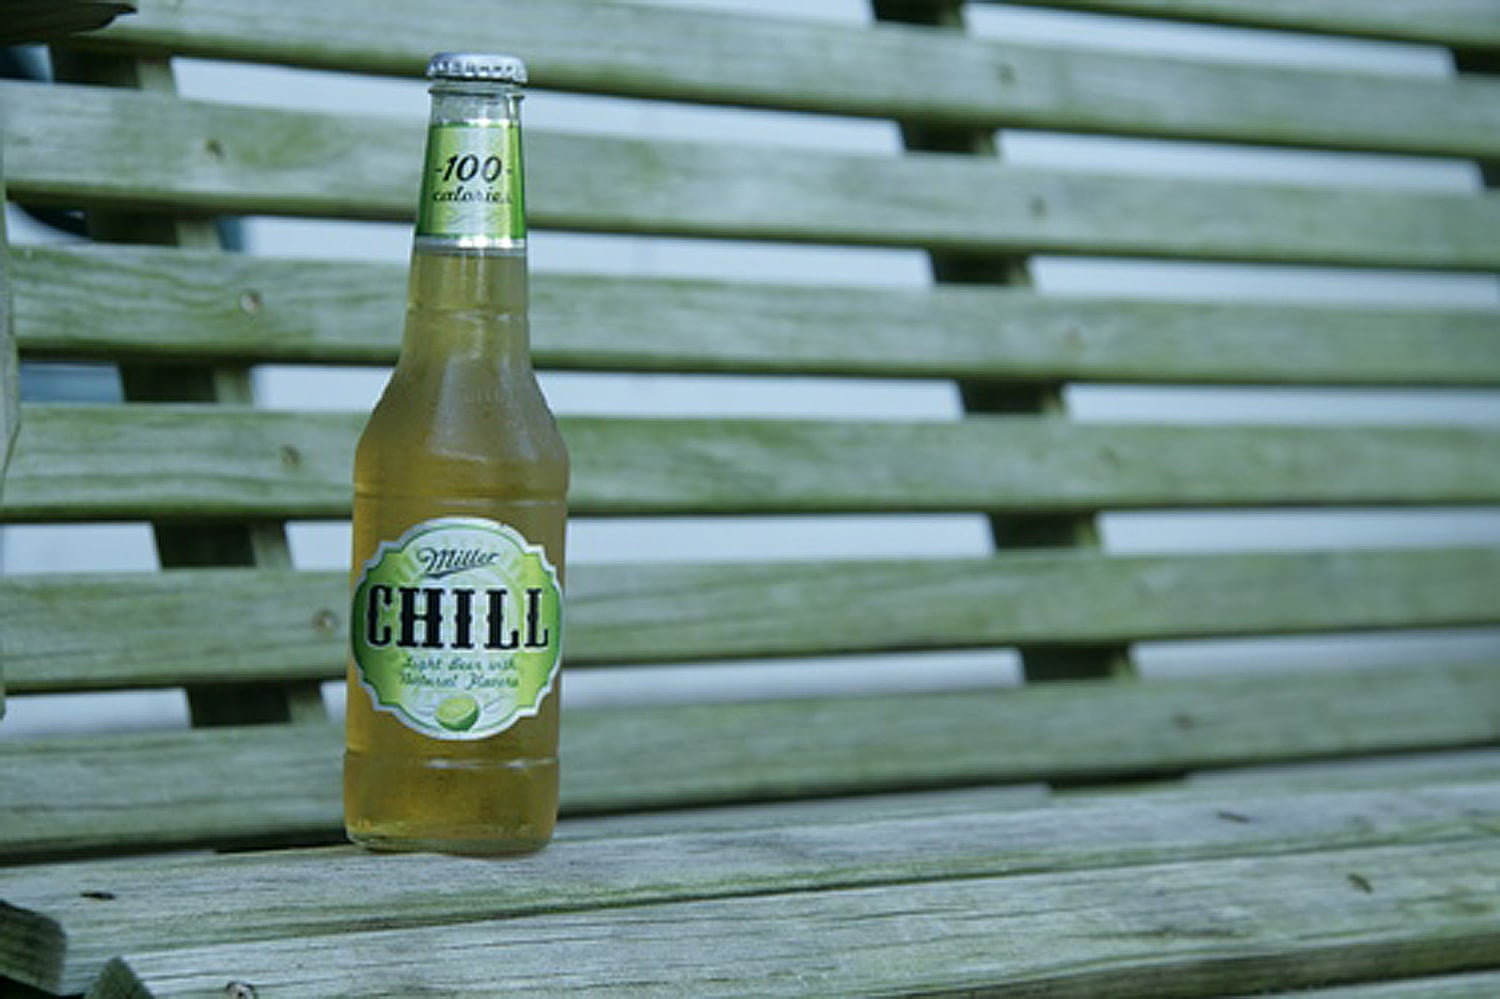 Miller Chill summer beer has been retired.